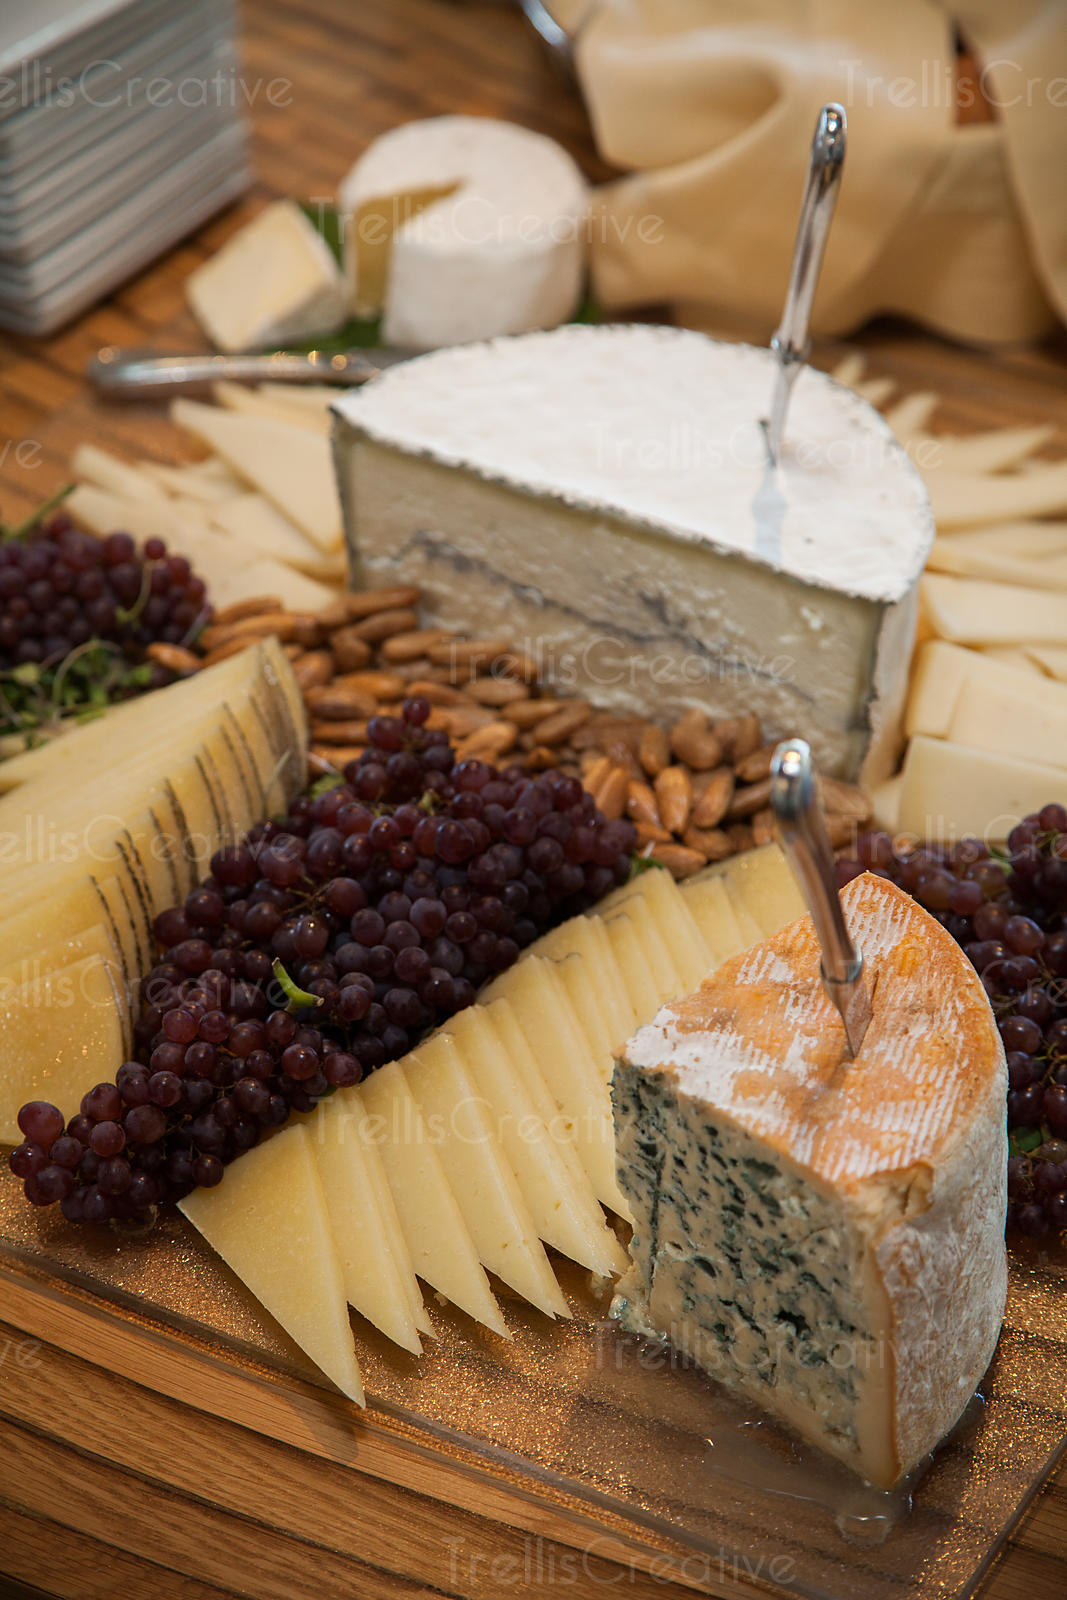 A variety of cheeses, nuts, and grapes artfully displayed